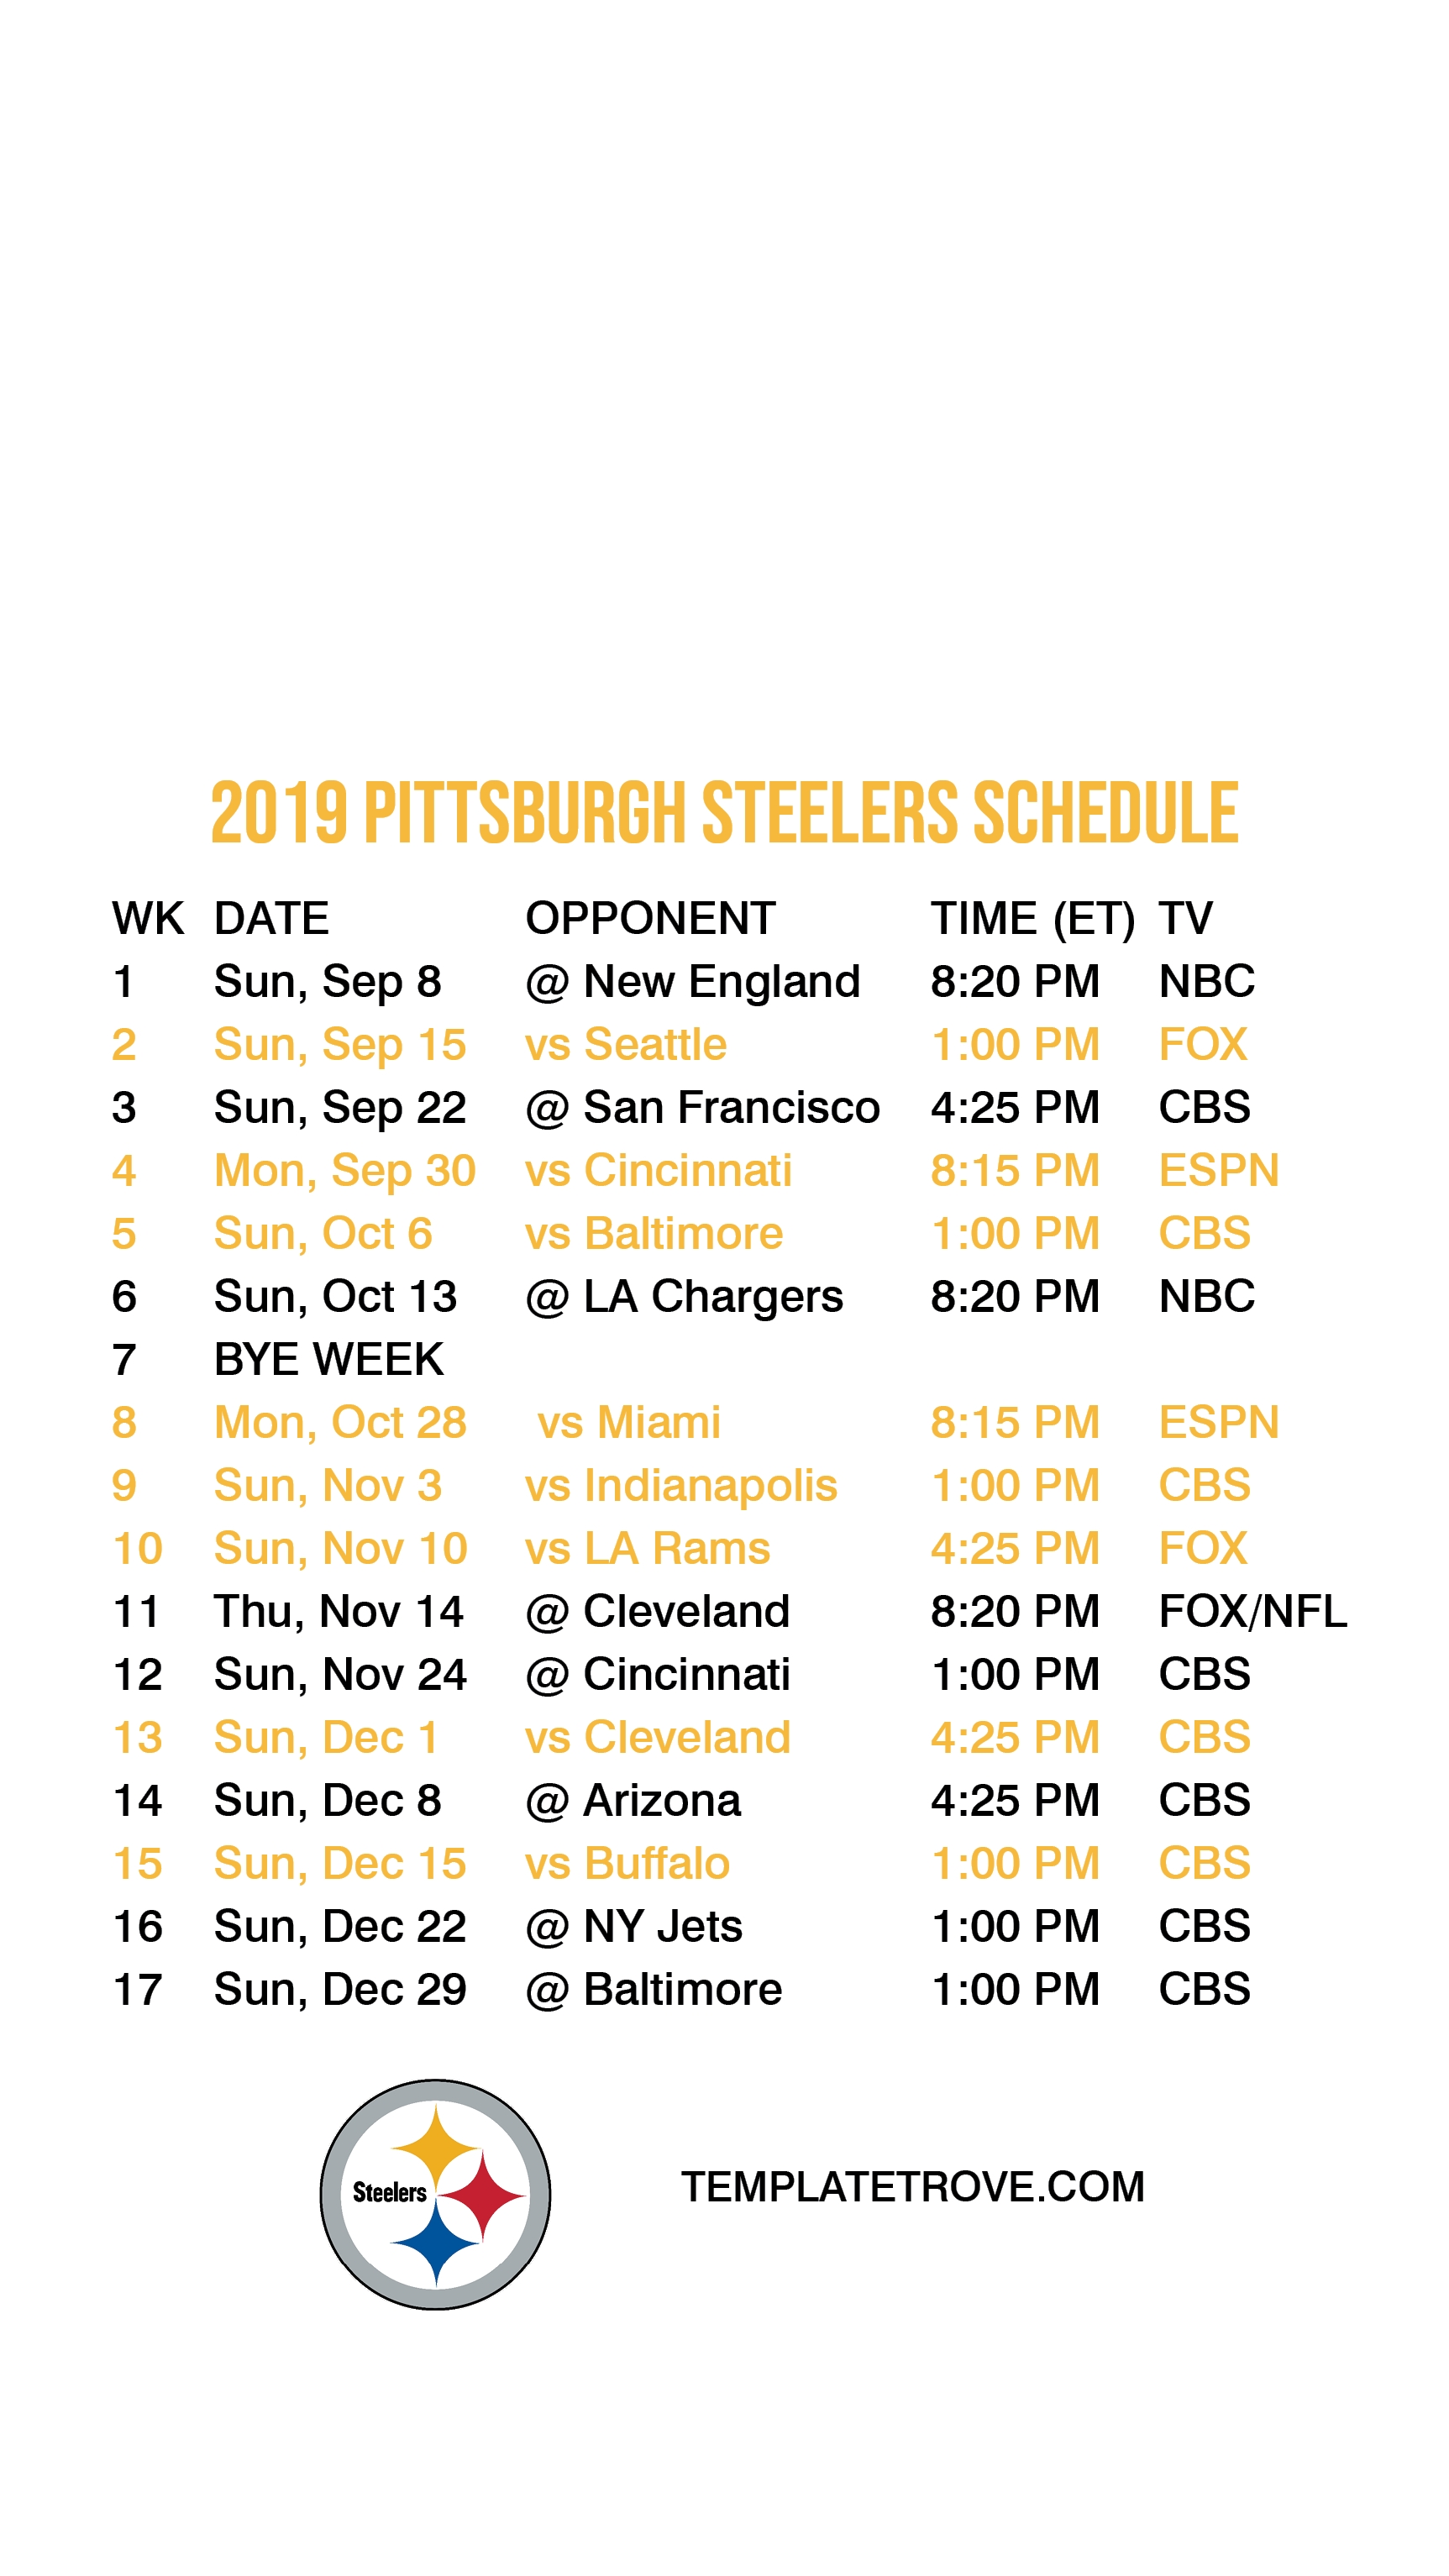 2019-2020 Pittsburgh Steelers Lock Screen Schedule For pertaining to Nfl 2019 2020 Printable Schedule